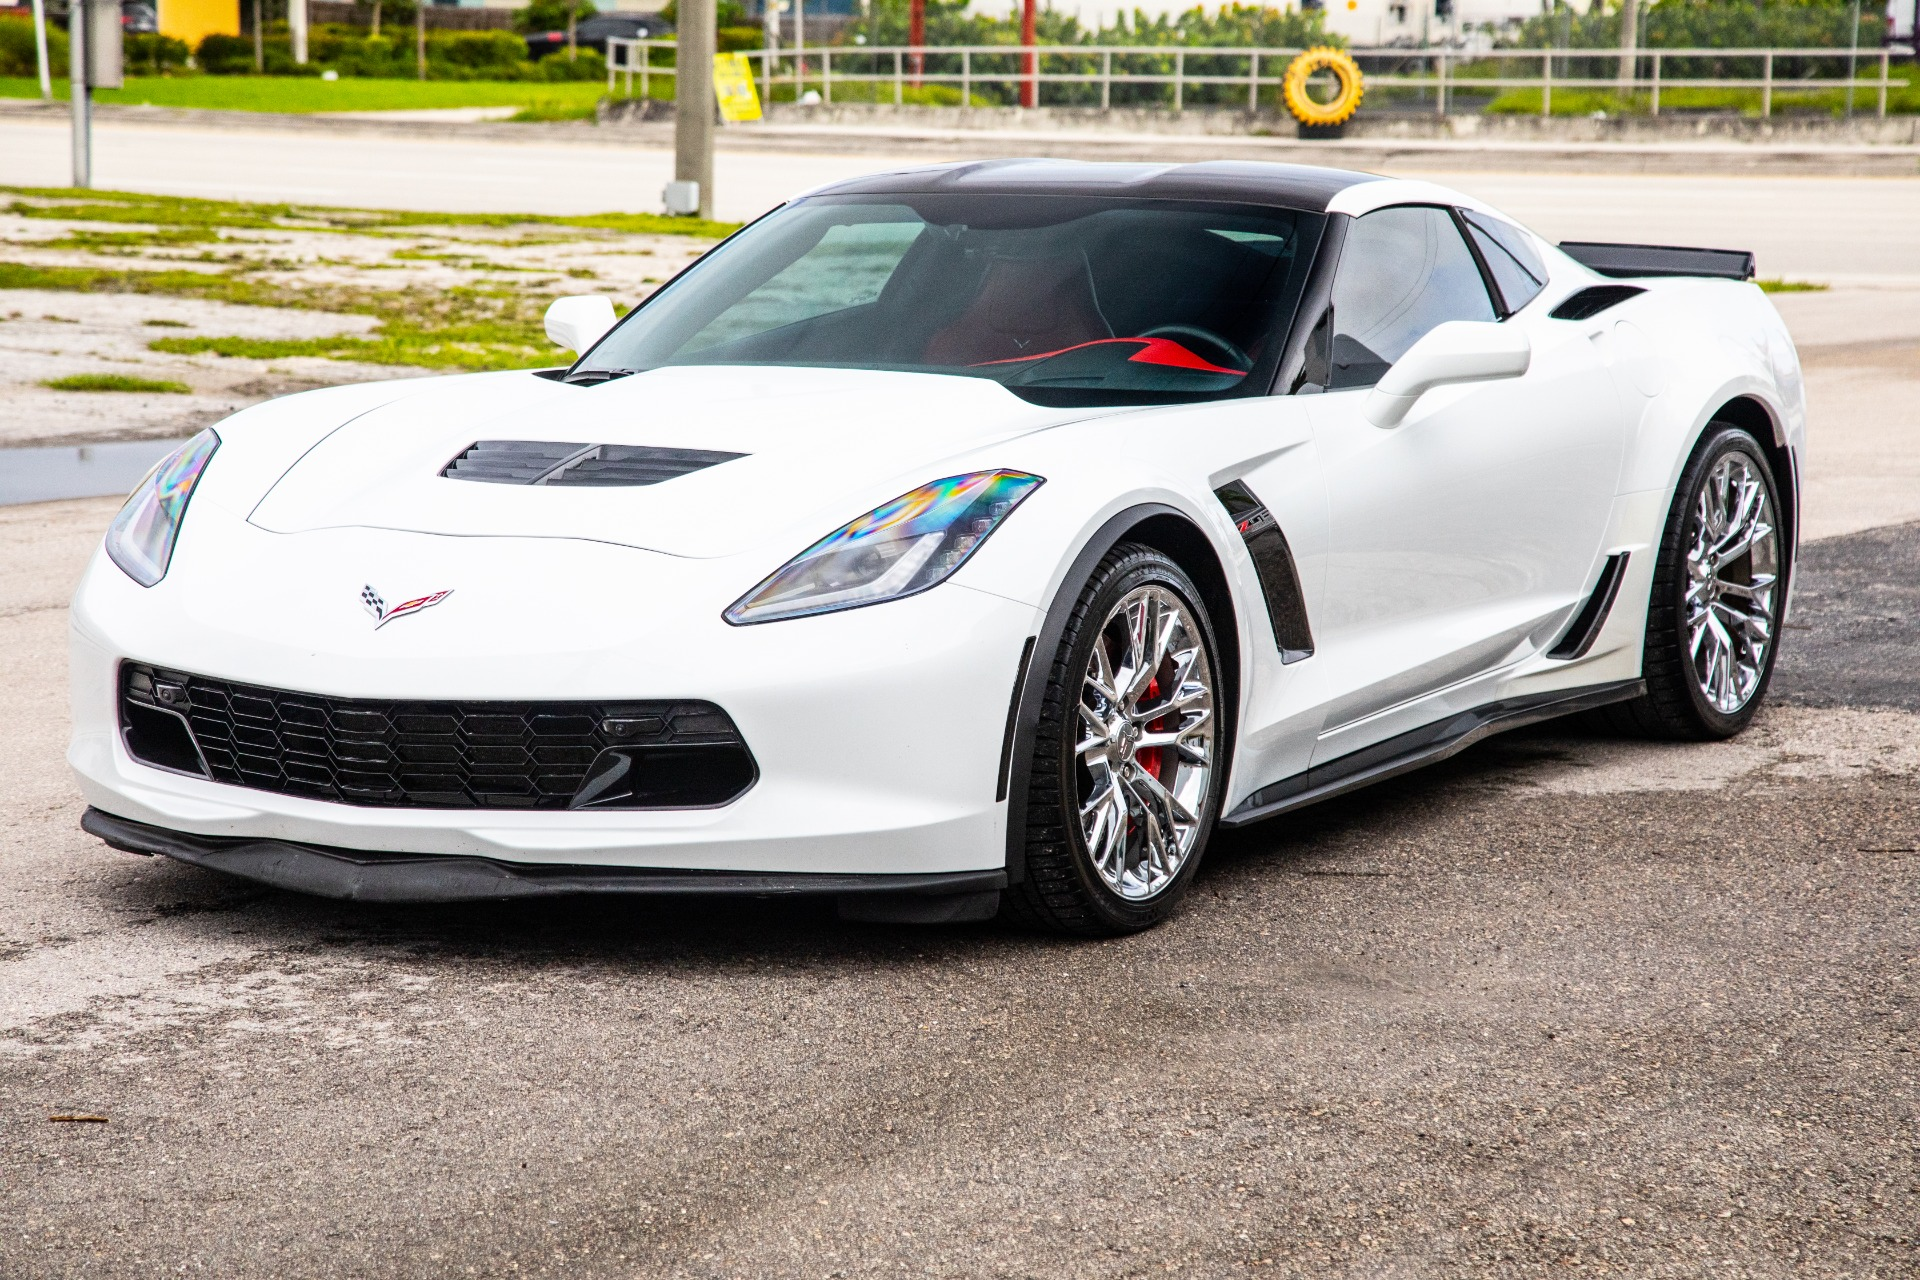 Used-2016-Chevrolet-Corvette-Z06